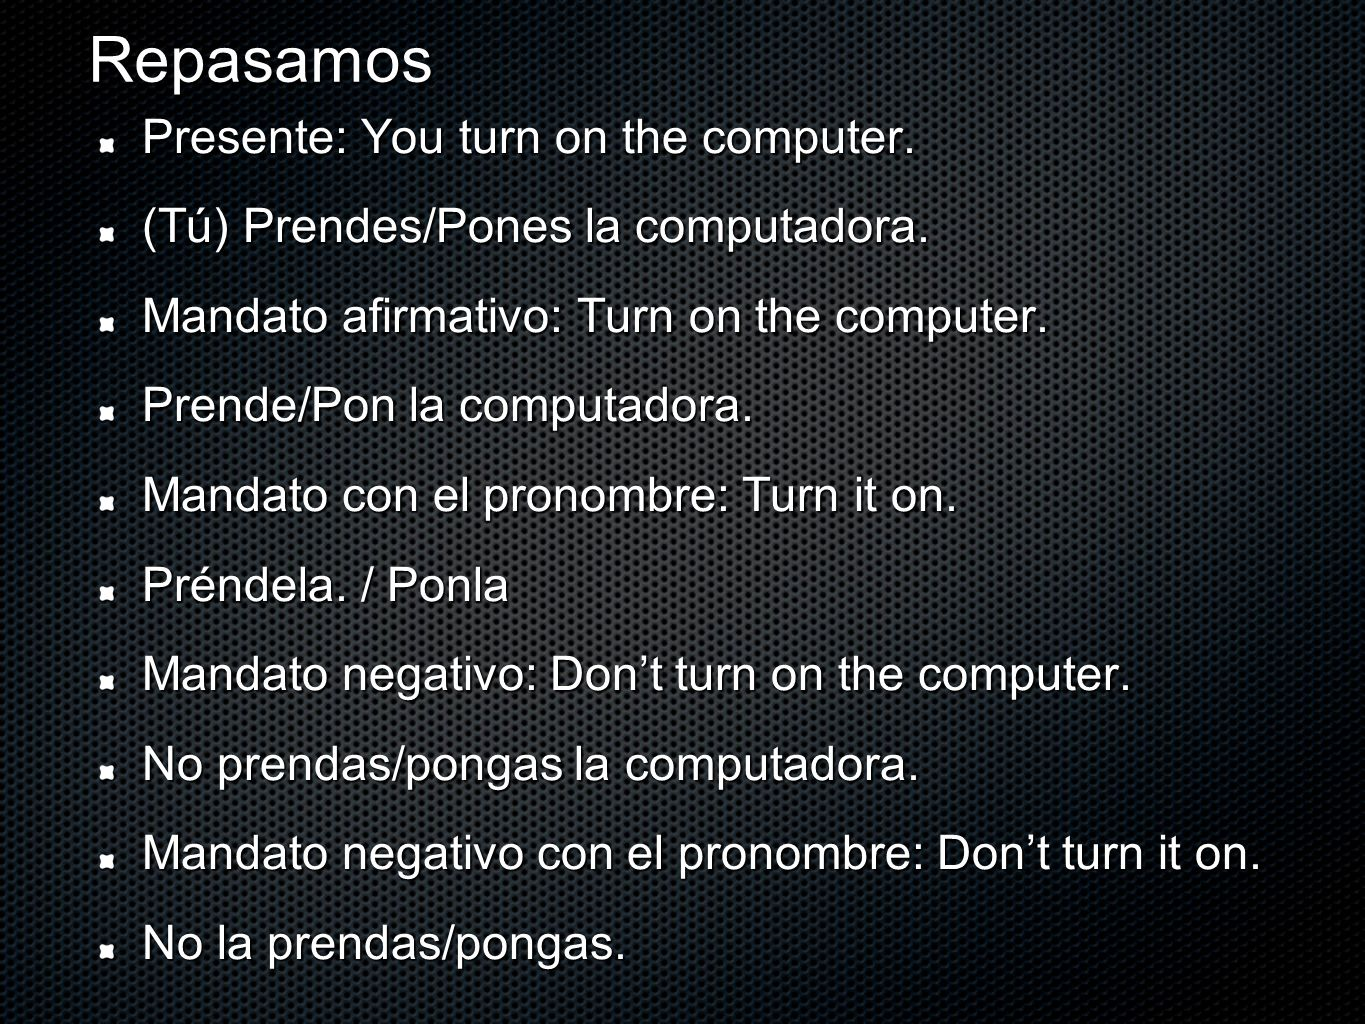 Repasamos Presente: You turn on the computer.